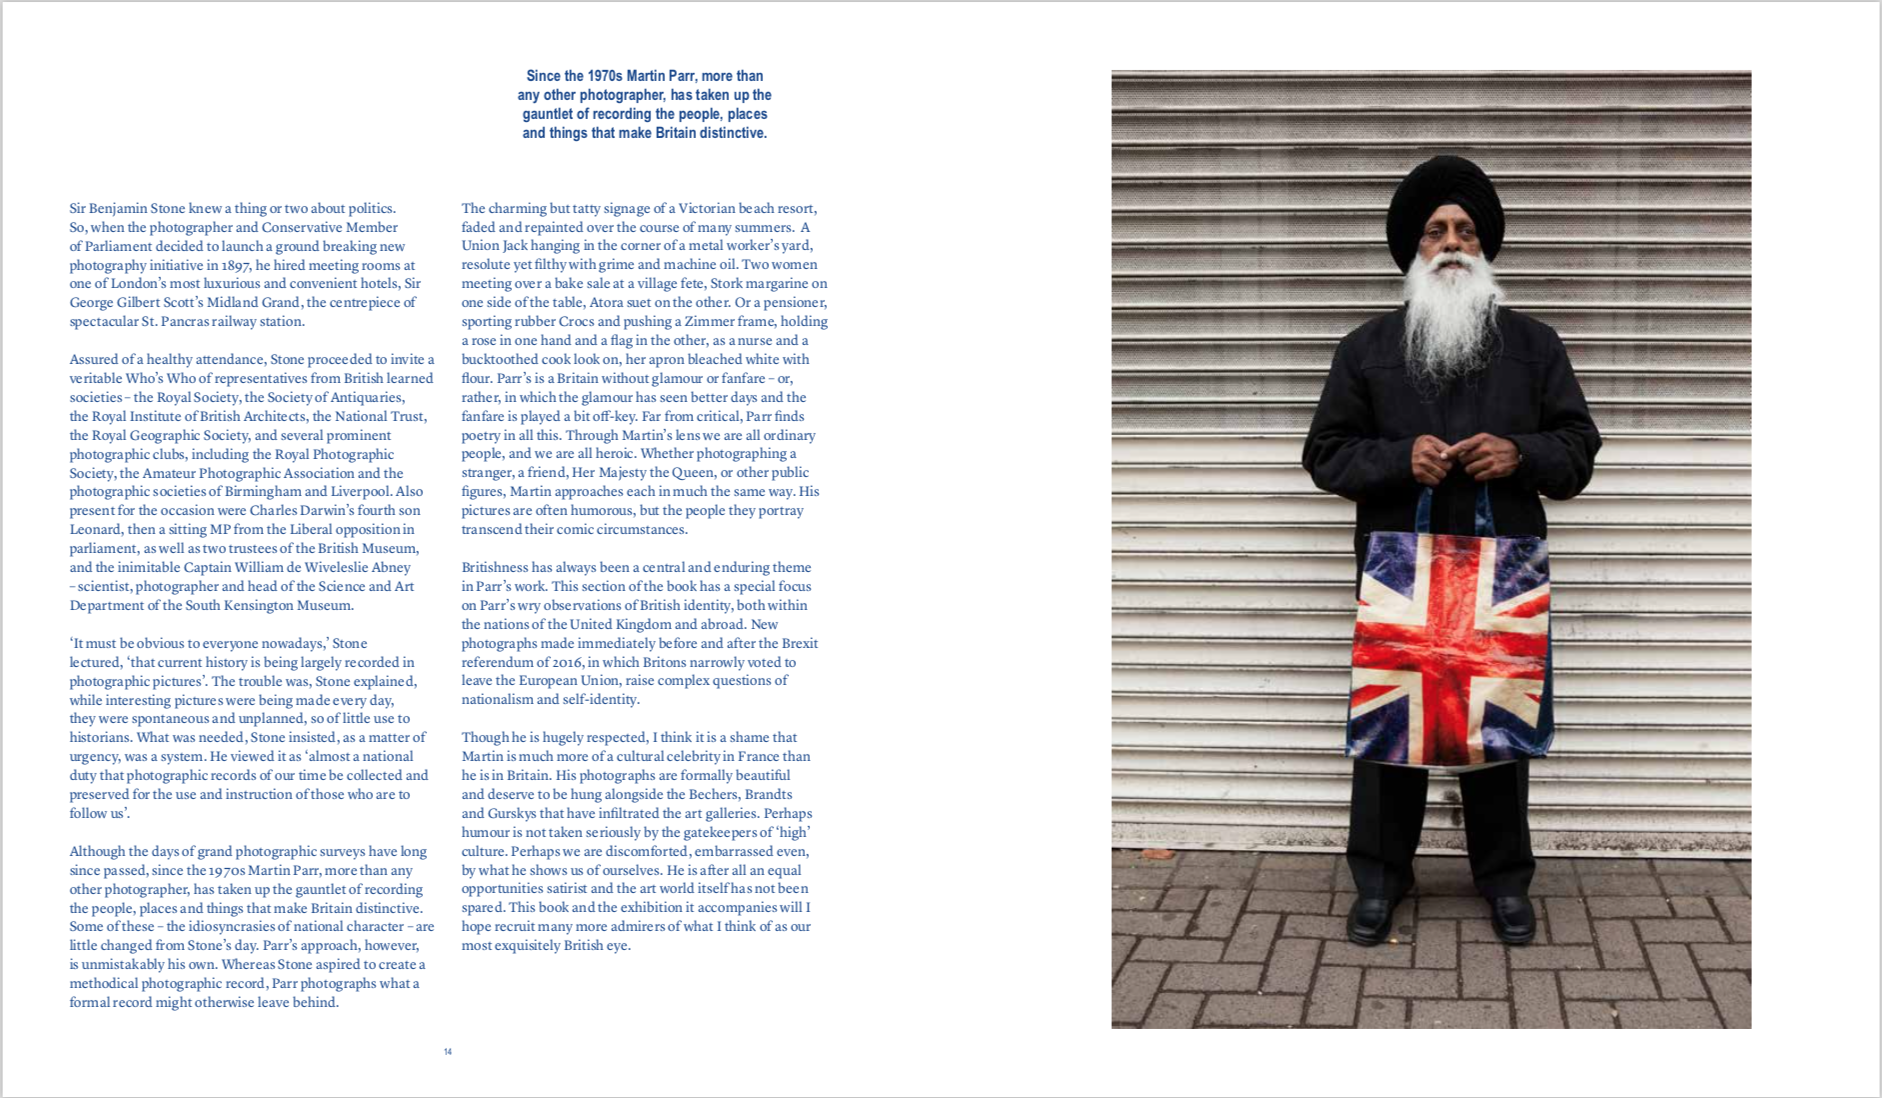 By Phillip Prodger, Martin Perry from Only Human: Photographs by Martin Parr copyright Phaidon 2019